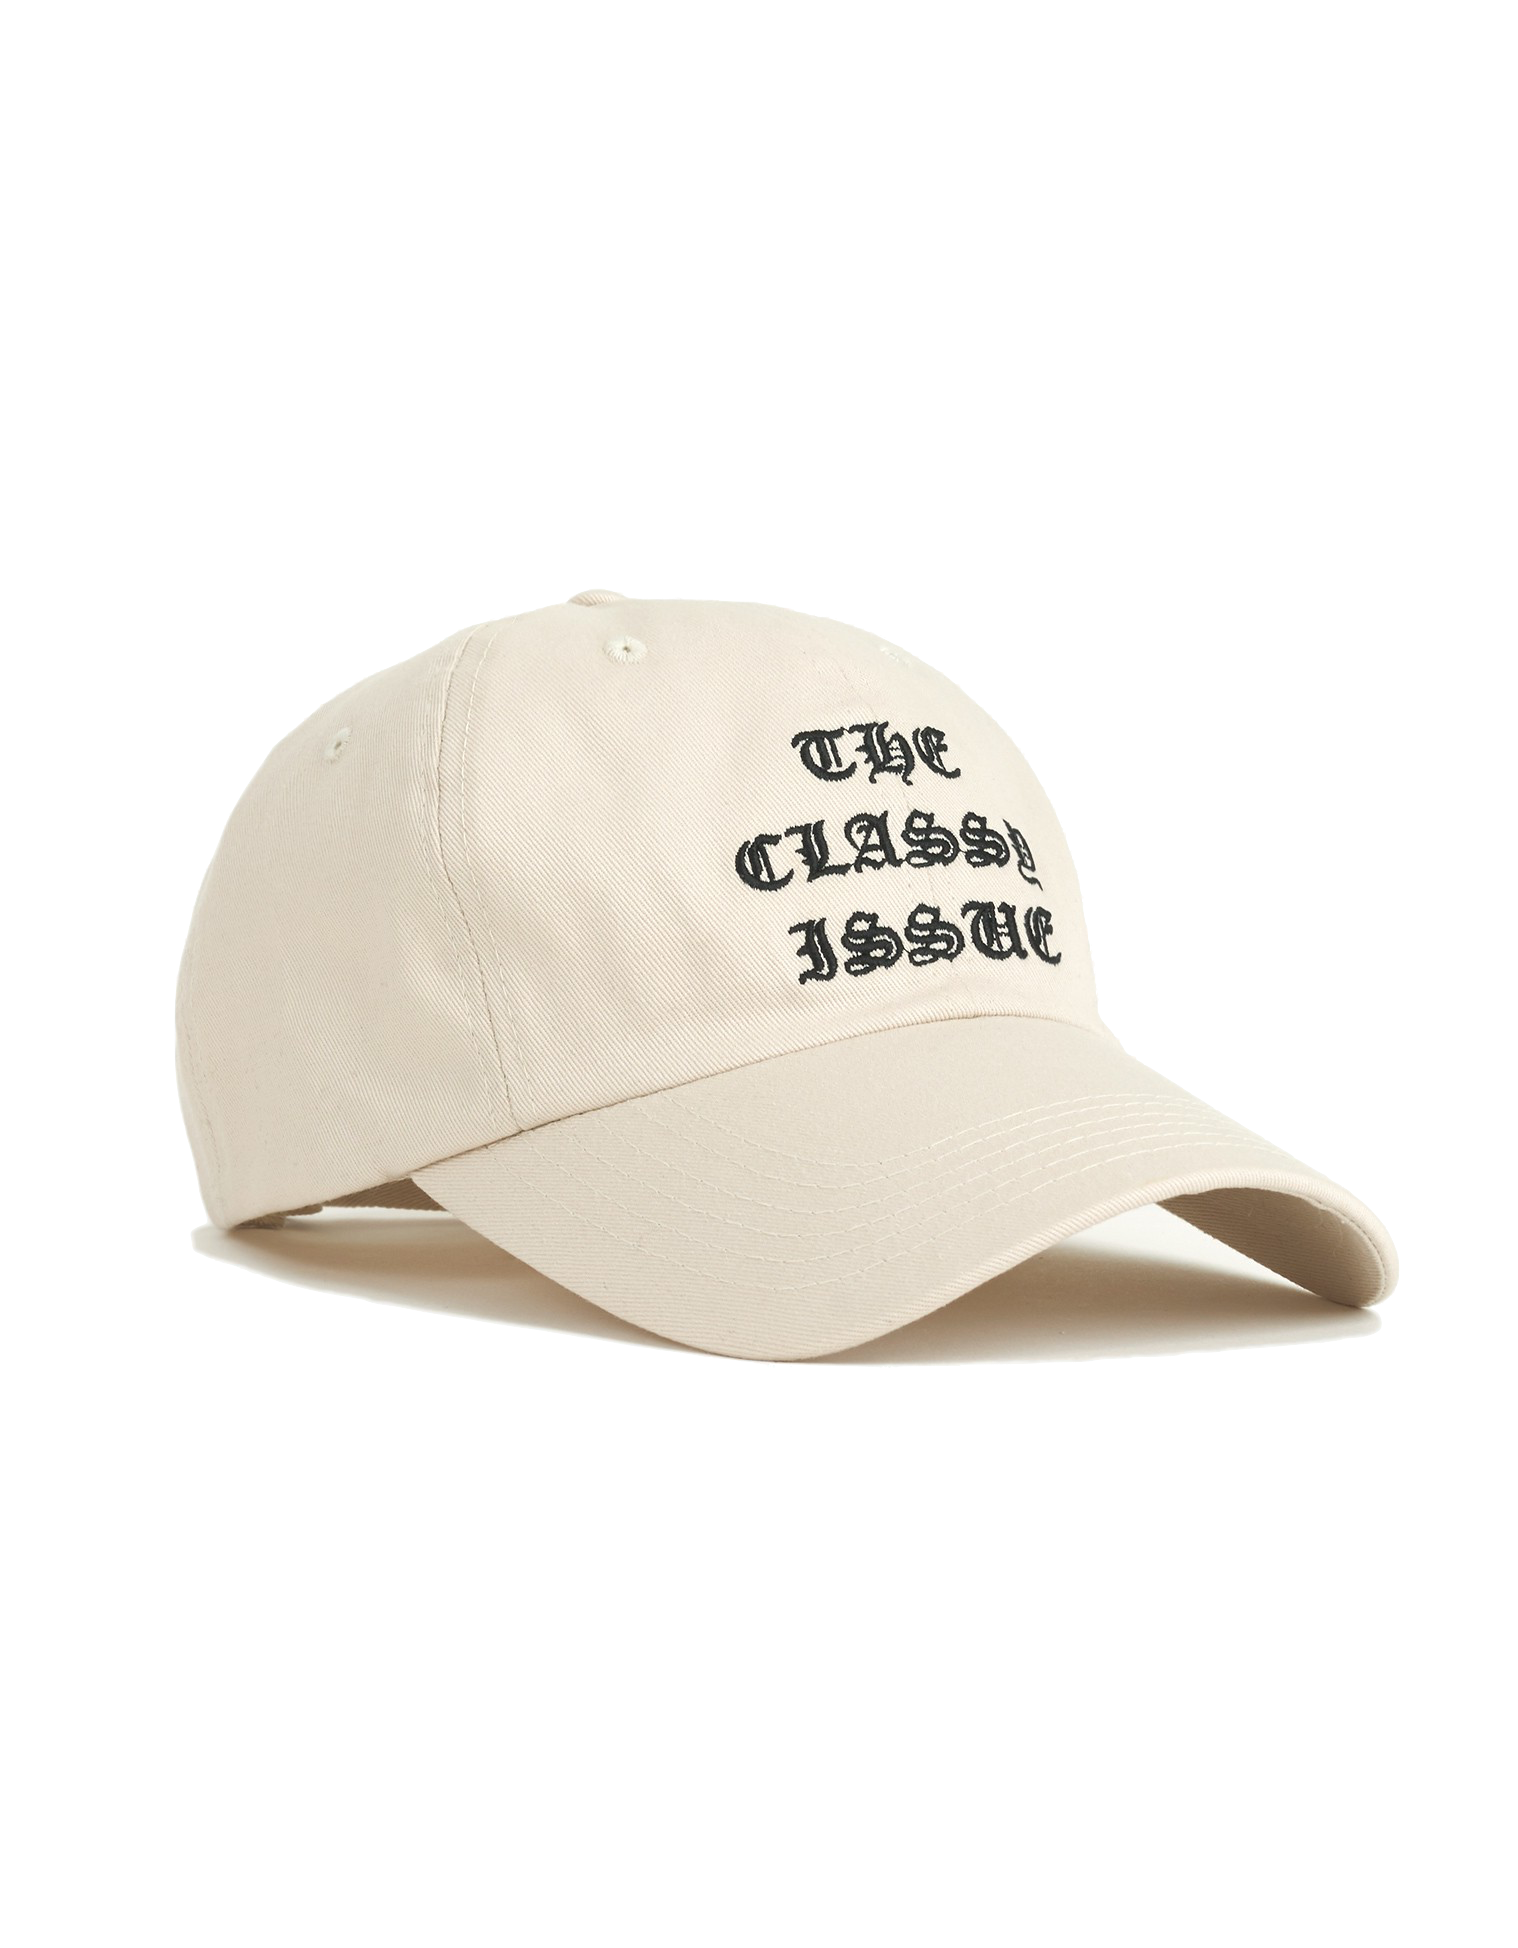 The Classy Issue Cap